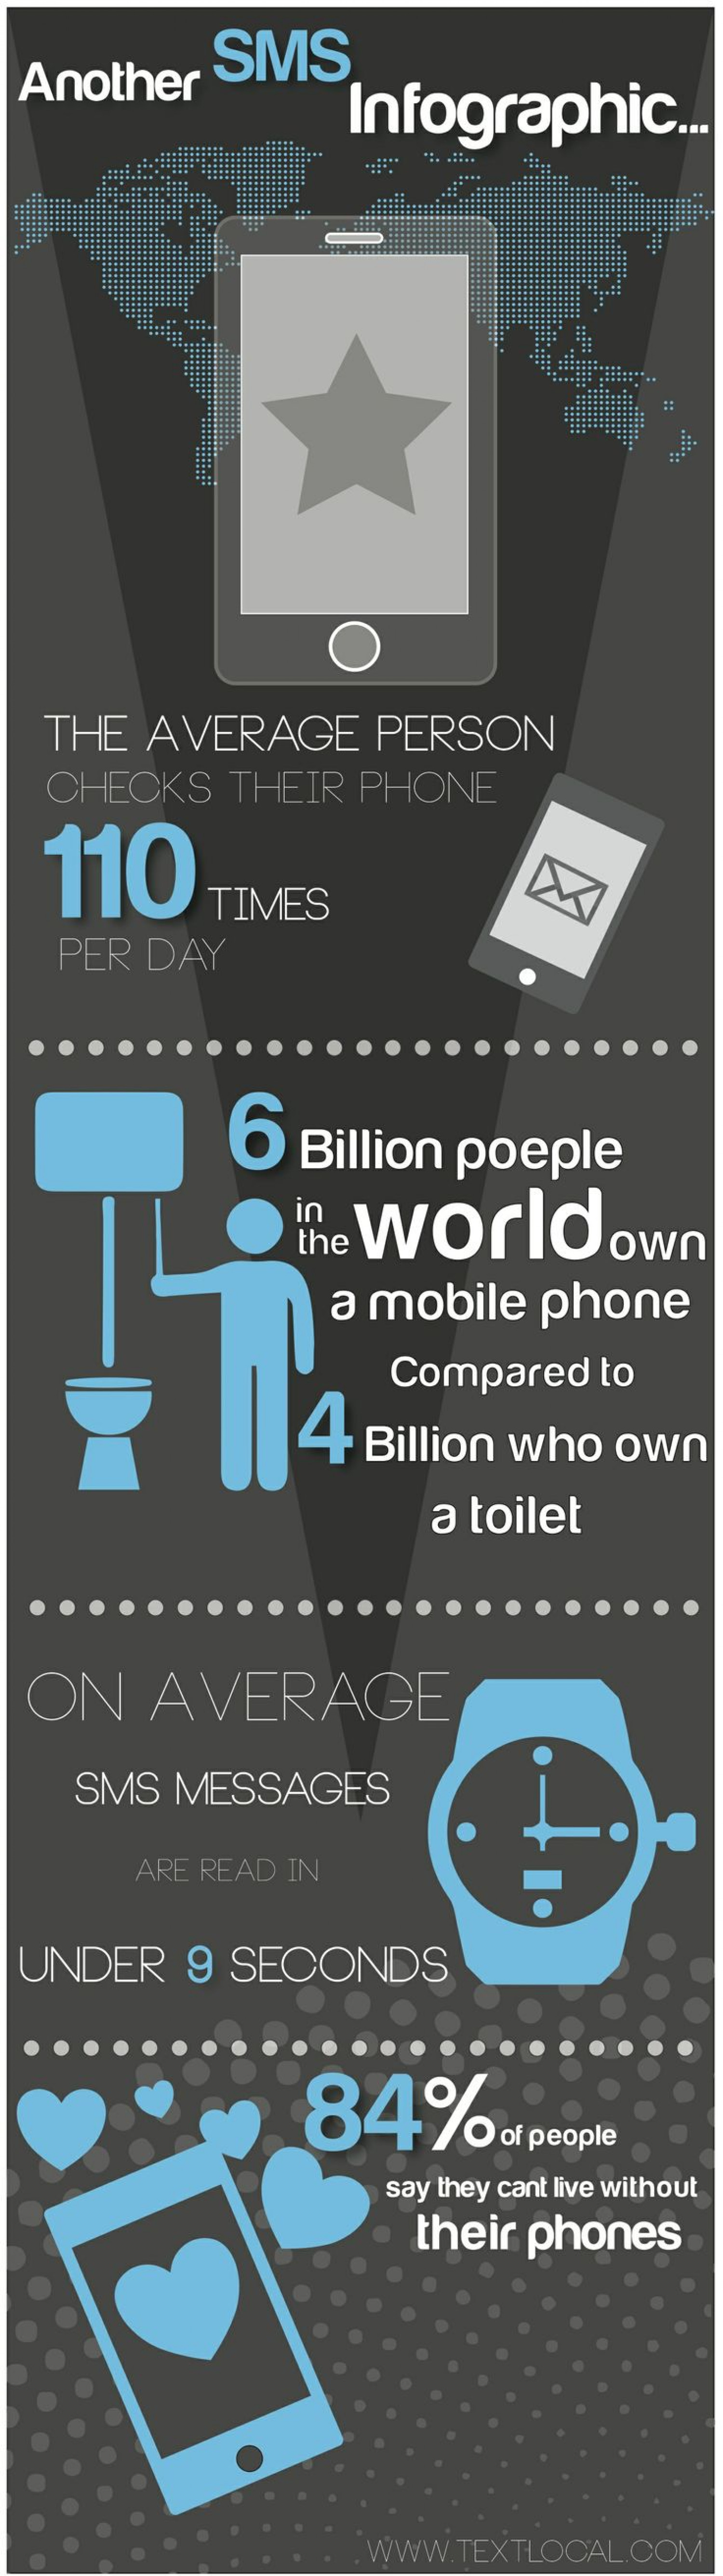 Another SMS Infographic Infographic